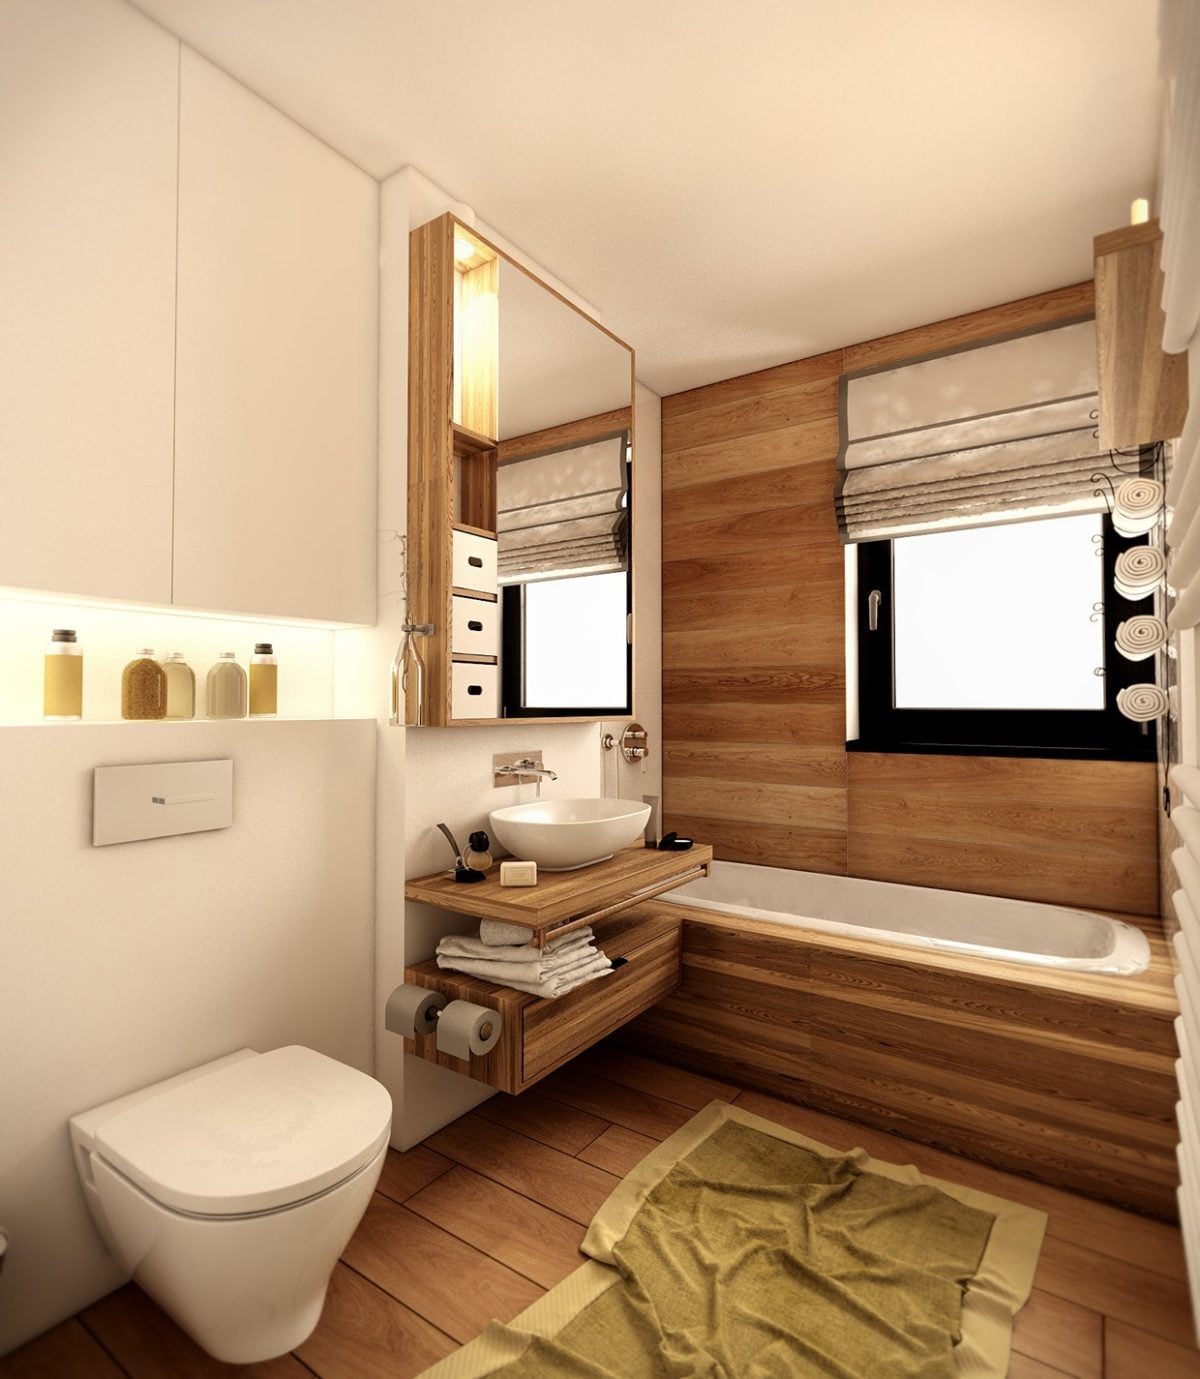 19wood-panel-bathroom-mau-nha-thiet-ke-go-doc-dao